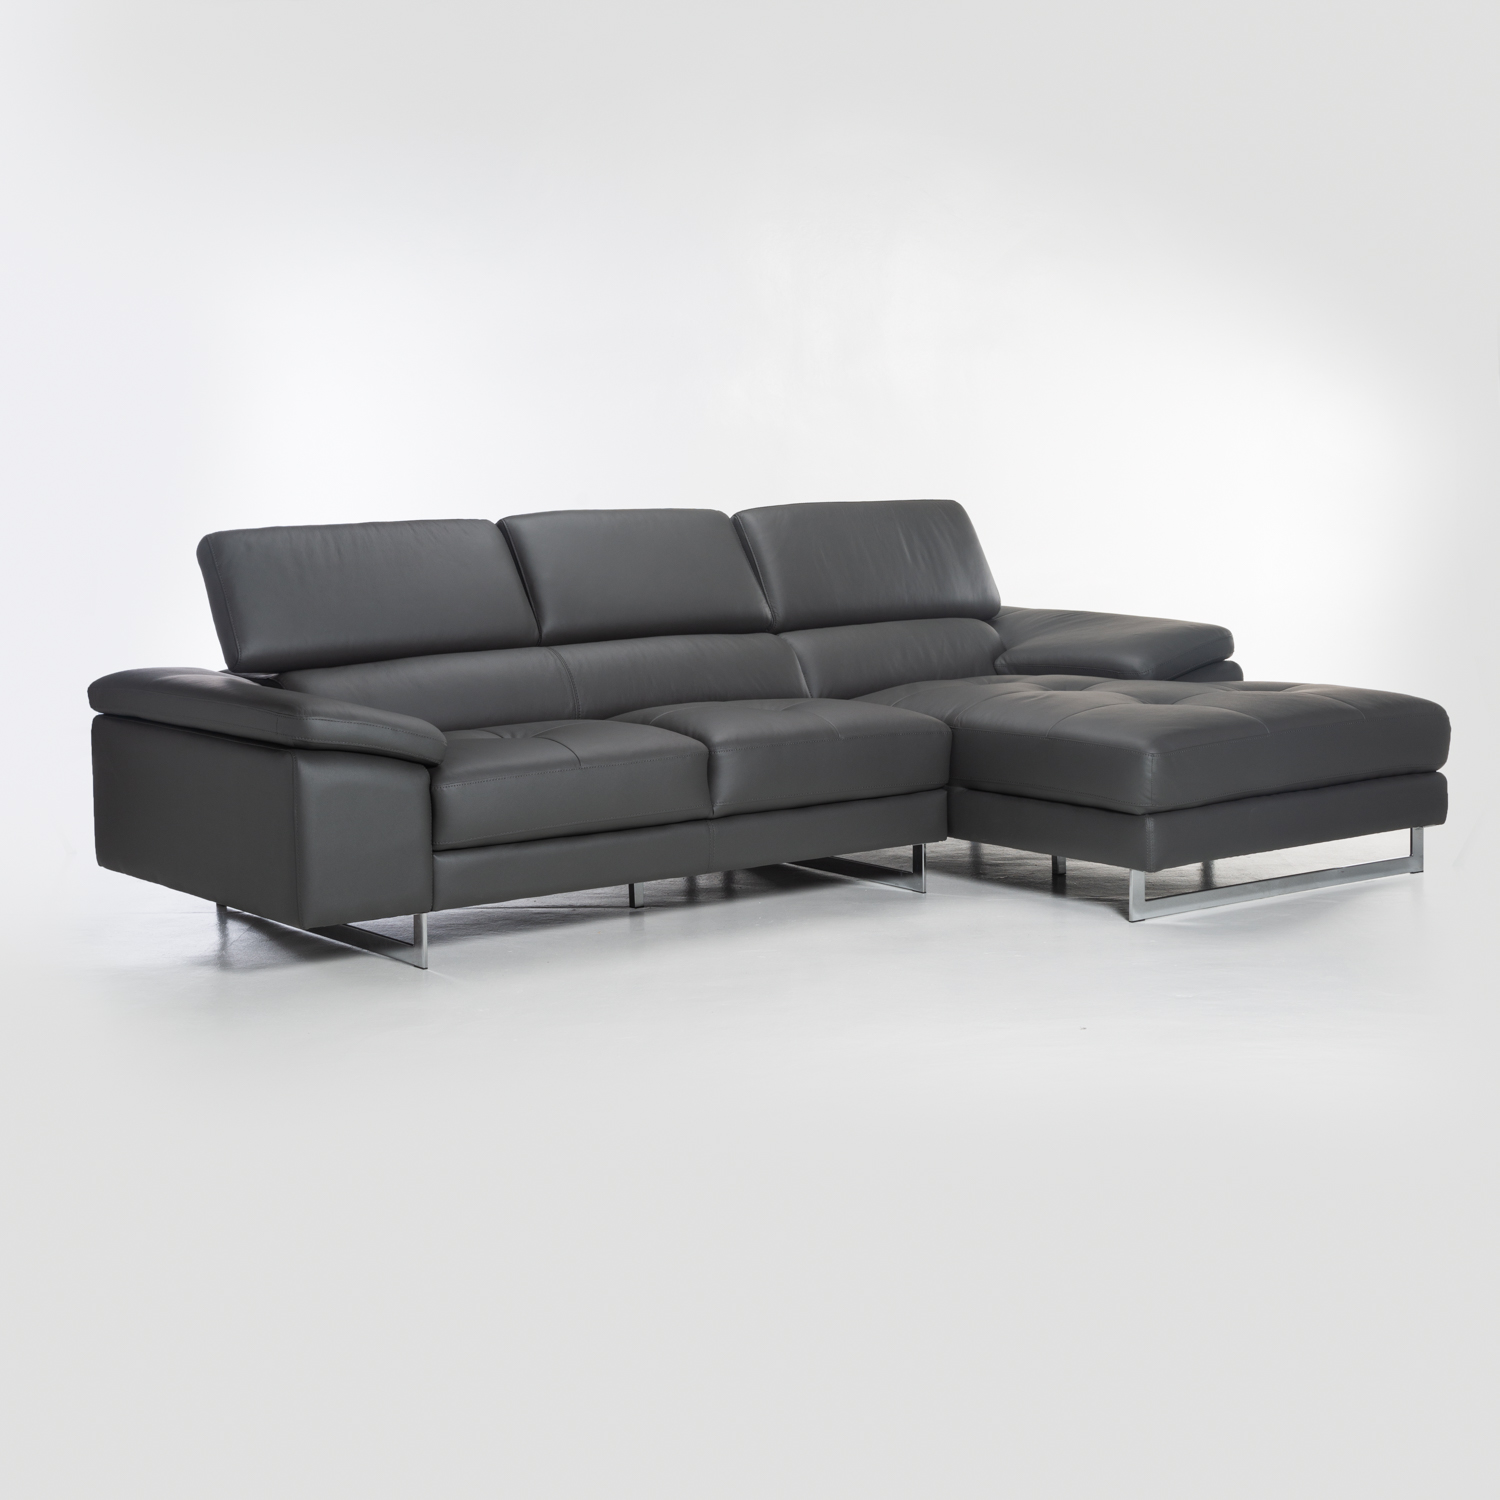 REMO TOP LEATHER UPP CORNER CHAISE-DARK GREY-RIGHT